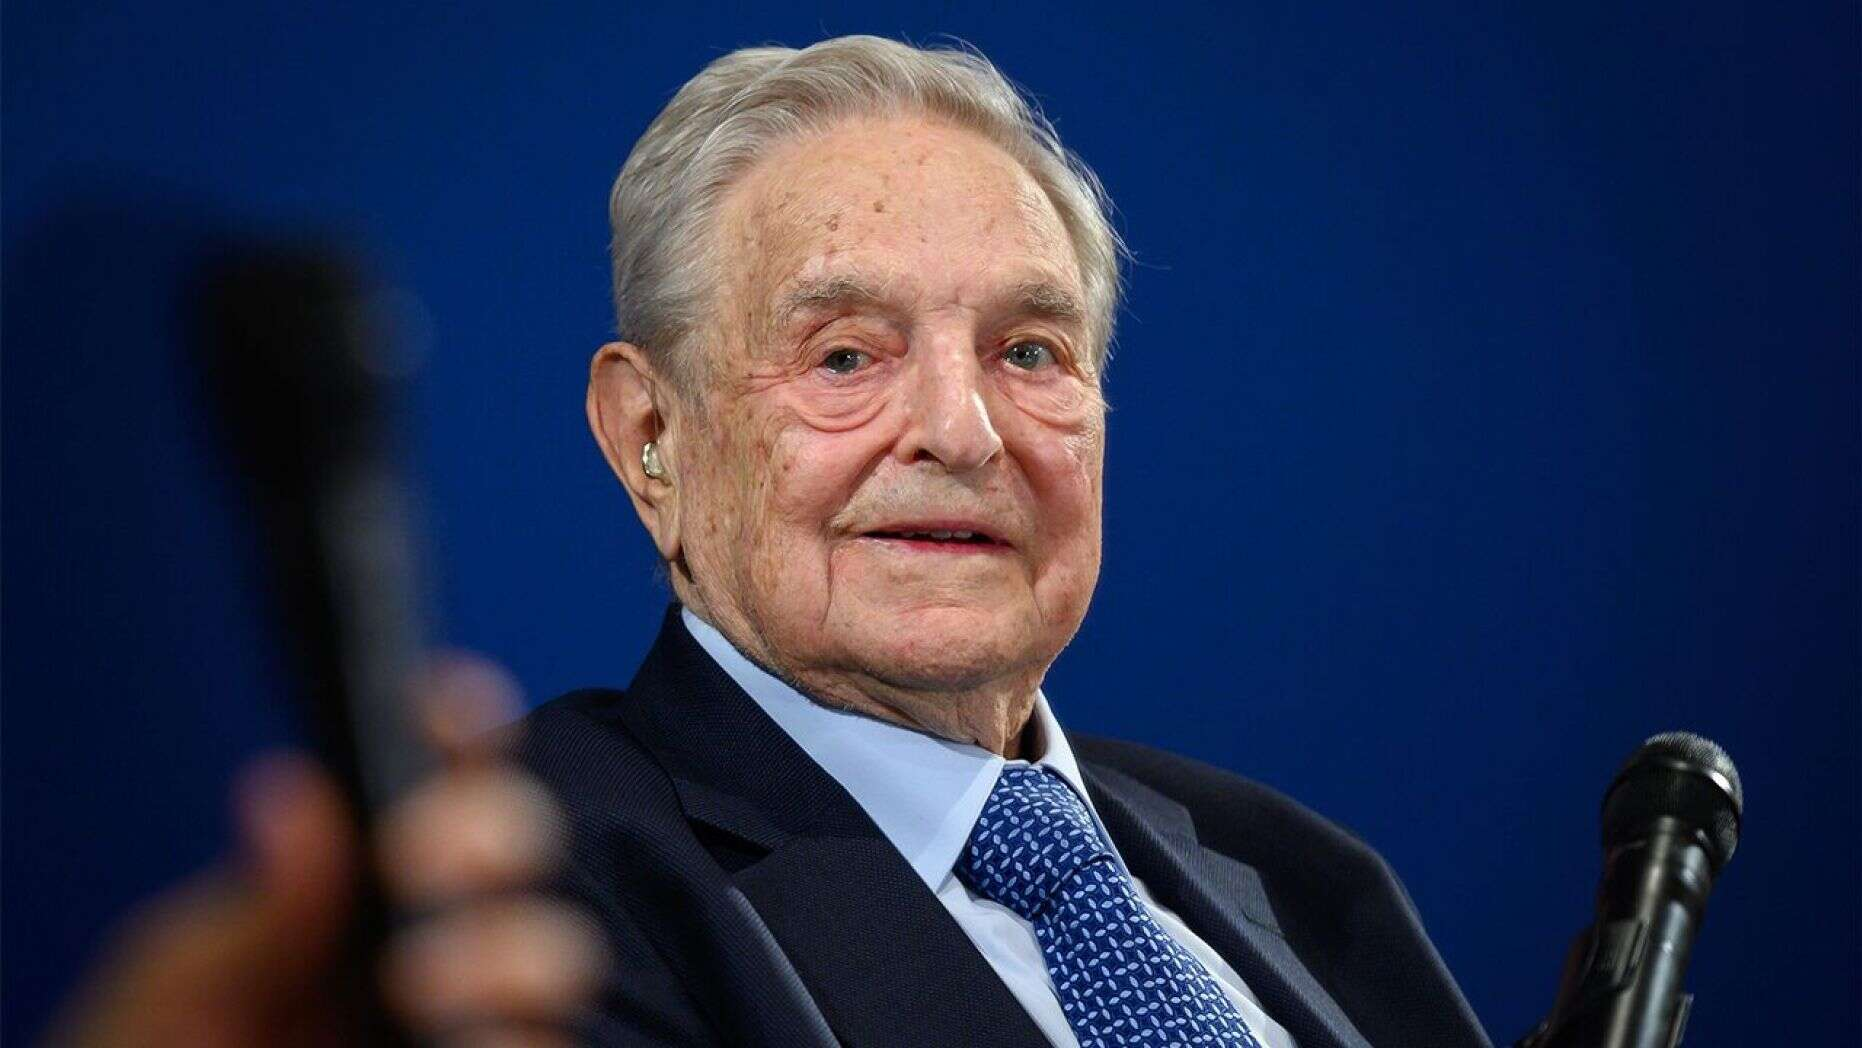 Facebook secretly working to re-elect Donald Trump – George Soros